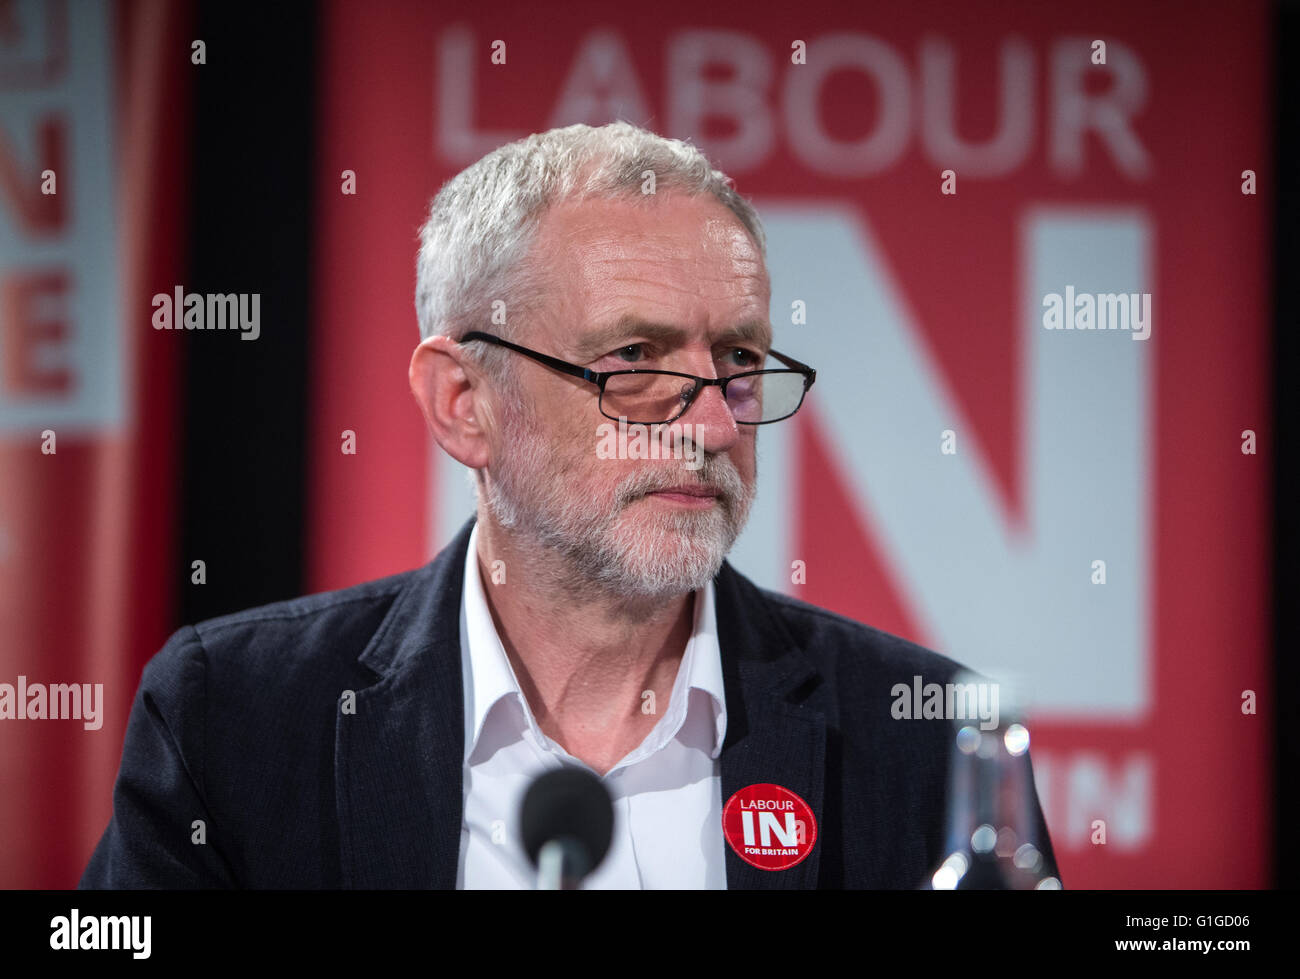 Labour leader Jeremy Corbyn speaks at a 'Vote to remain June 23rd' rally in Westminster,London.He is supporting - Stock Image